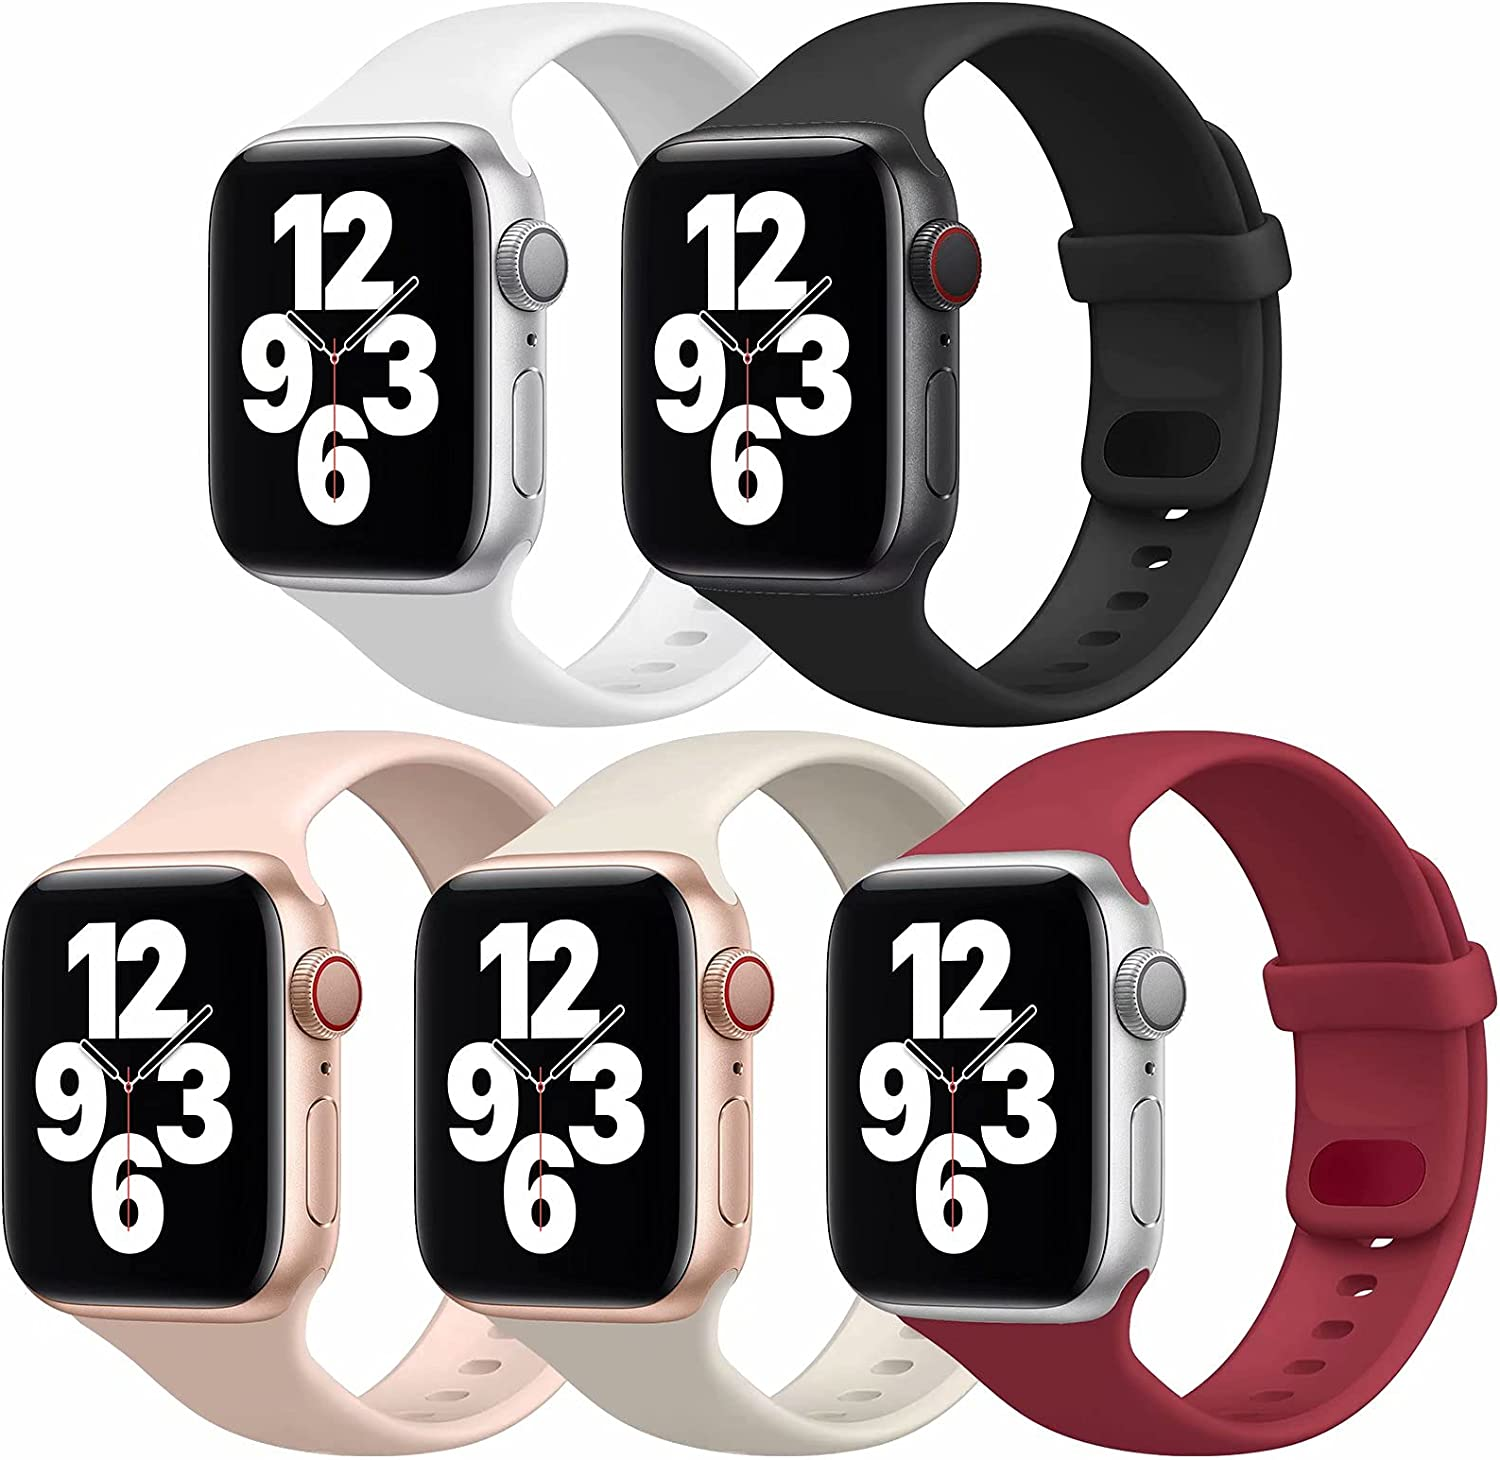 UHKZ 5 Pack Sport Bands Compatible with Apple Watch Bands 38mm 40mm, Soft Silicone Replacement Strap Women Men for iWatch Series SE/6/5/4/3/2/1,White/Black/Pink Sand/Fog/Wine Red,L